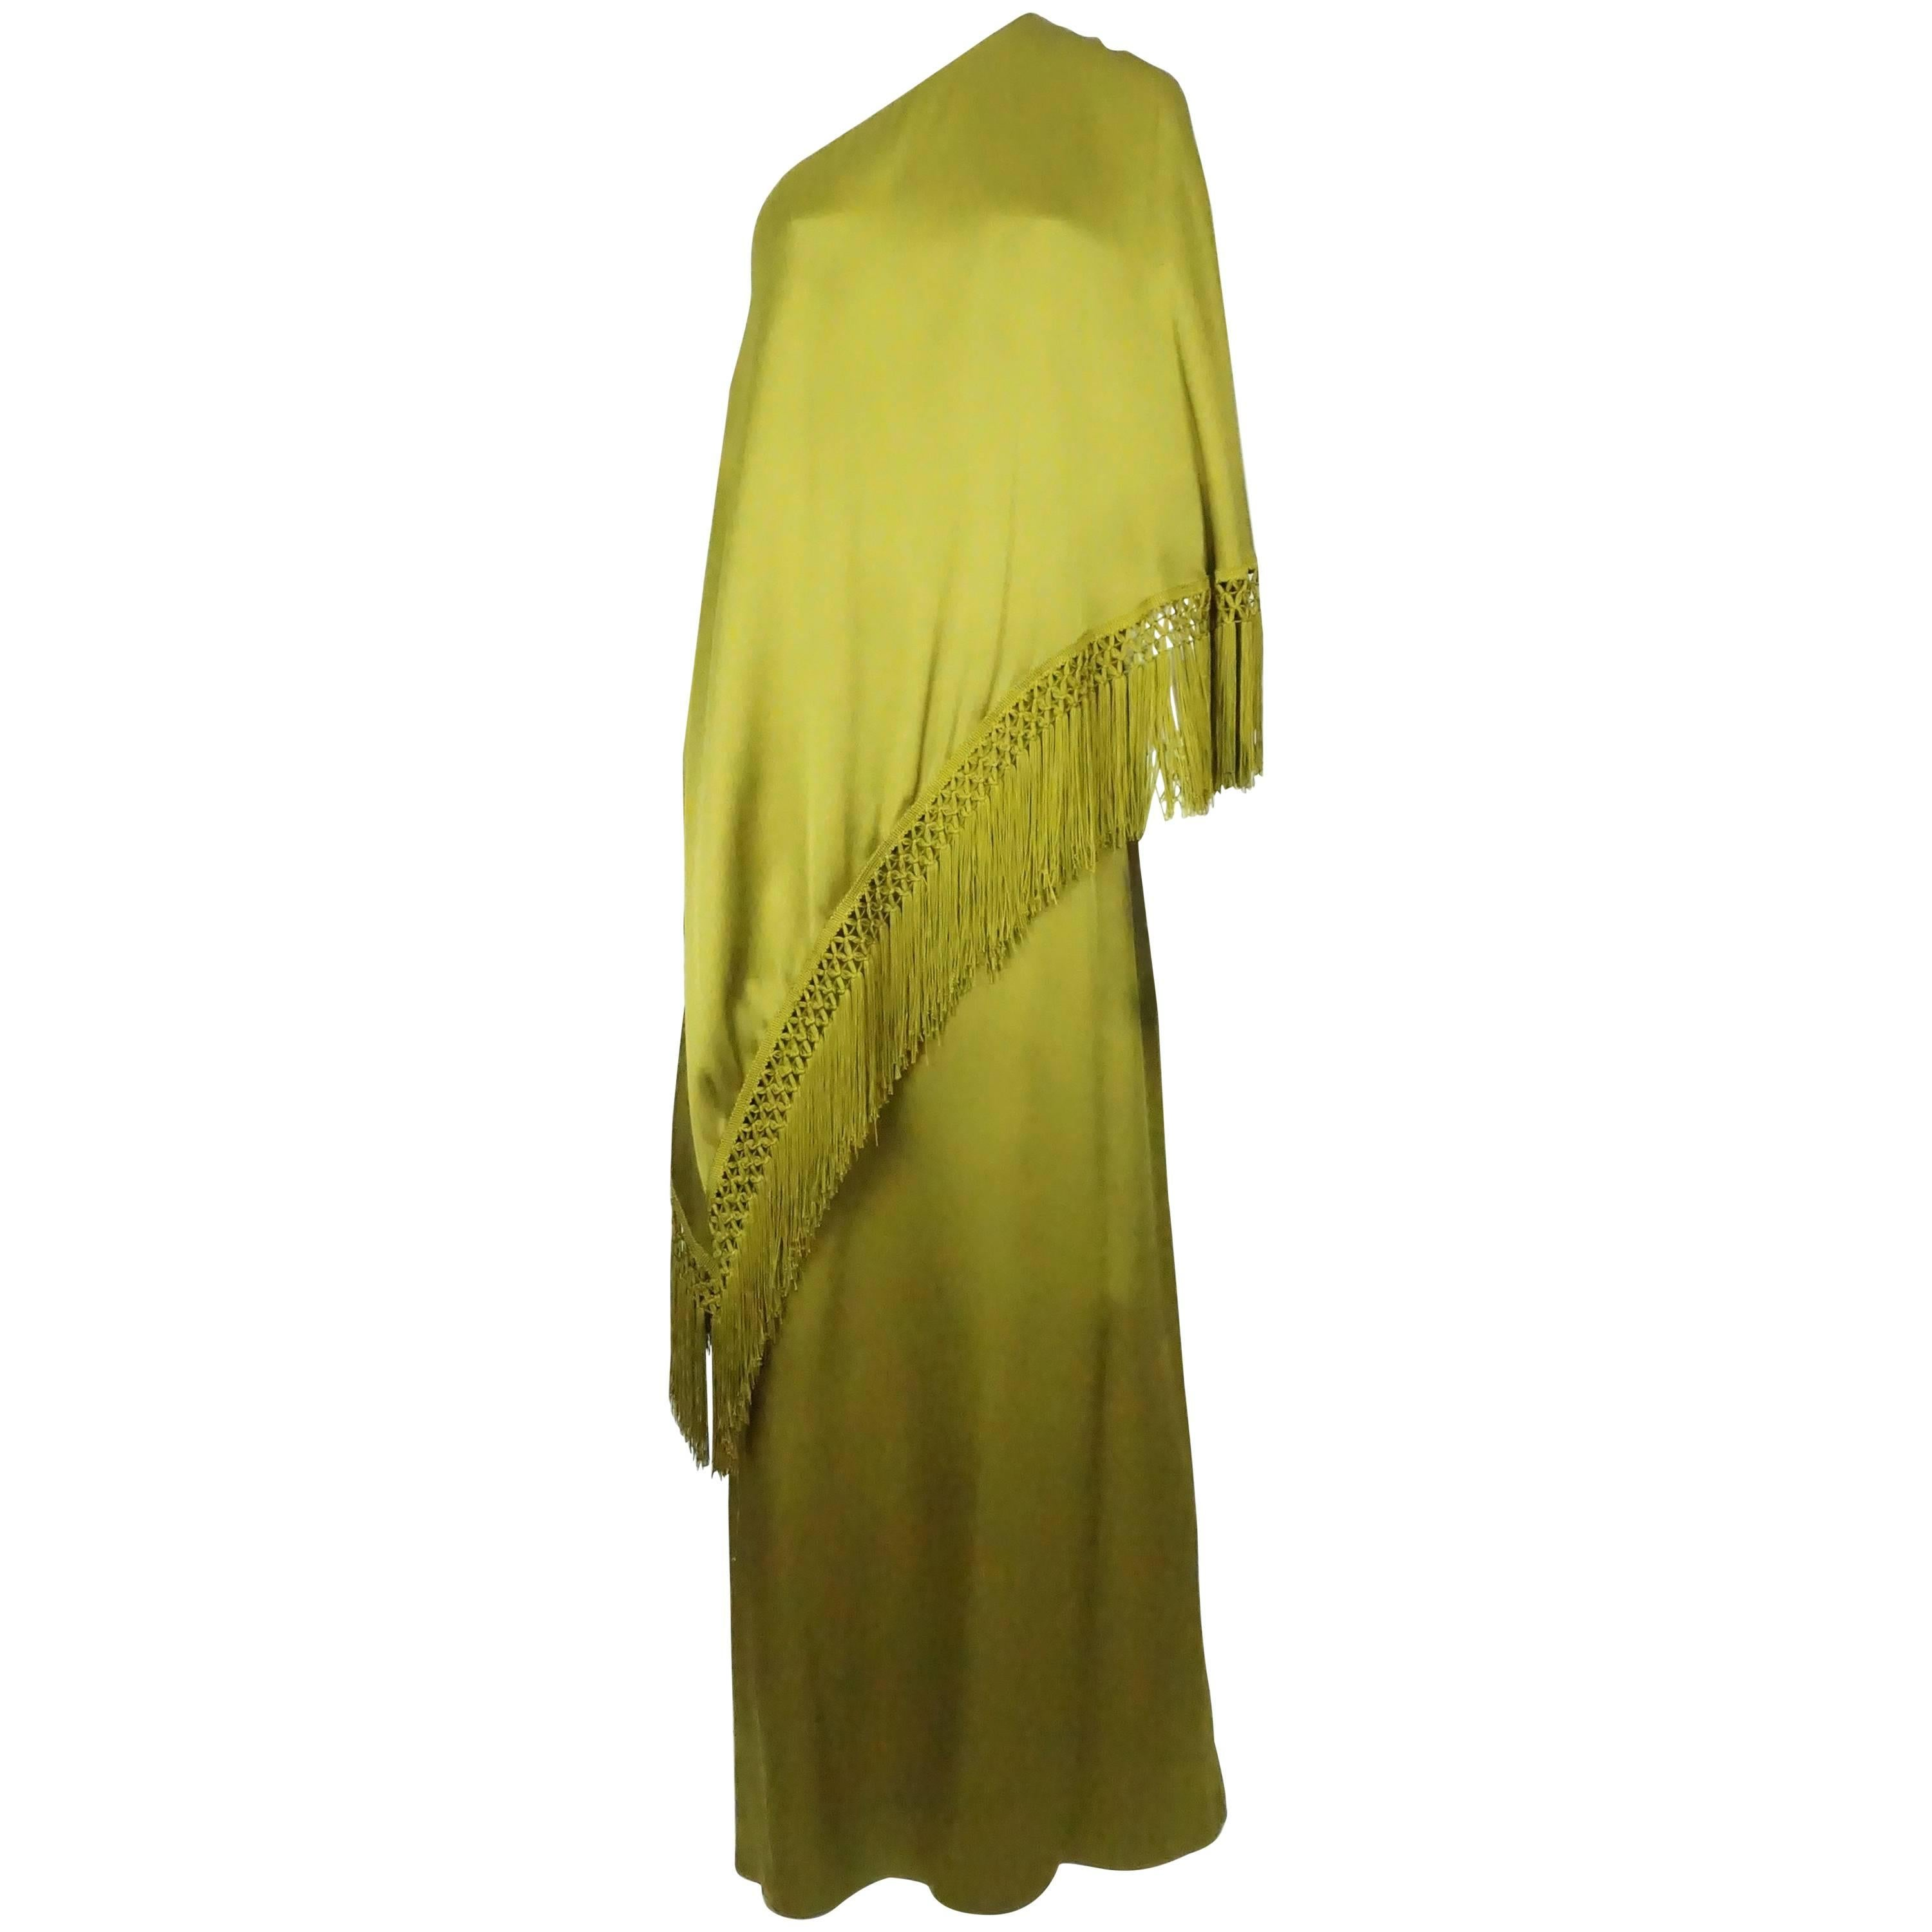 Andrew Gn Olive Green Silk One Shoulder Gown with Fringe